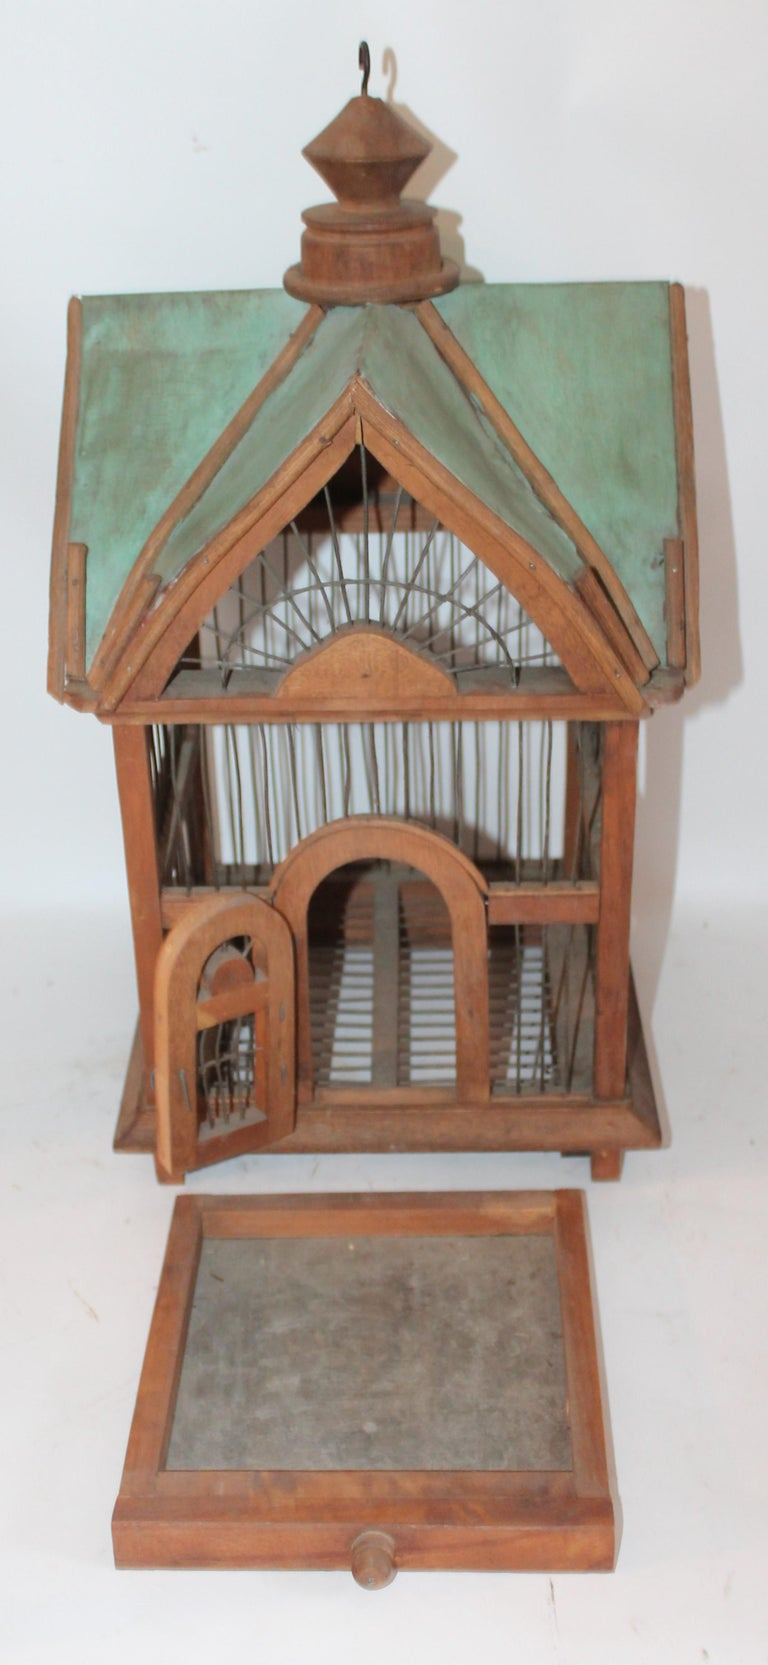 Hand-Crafted Bird House / Cage For Sale